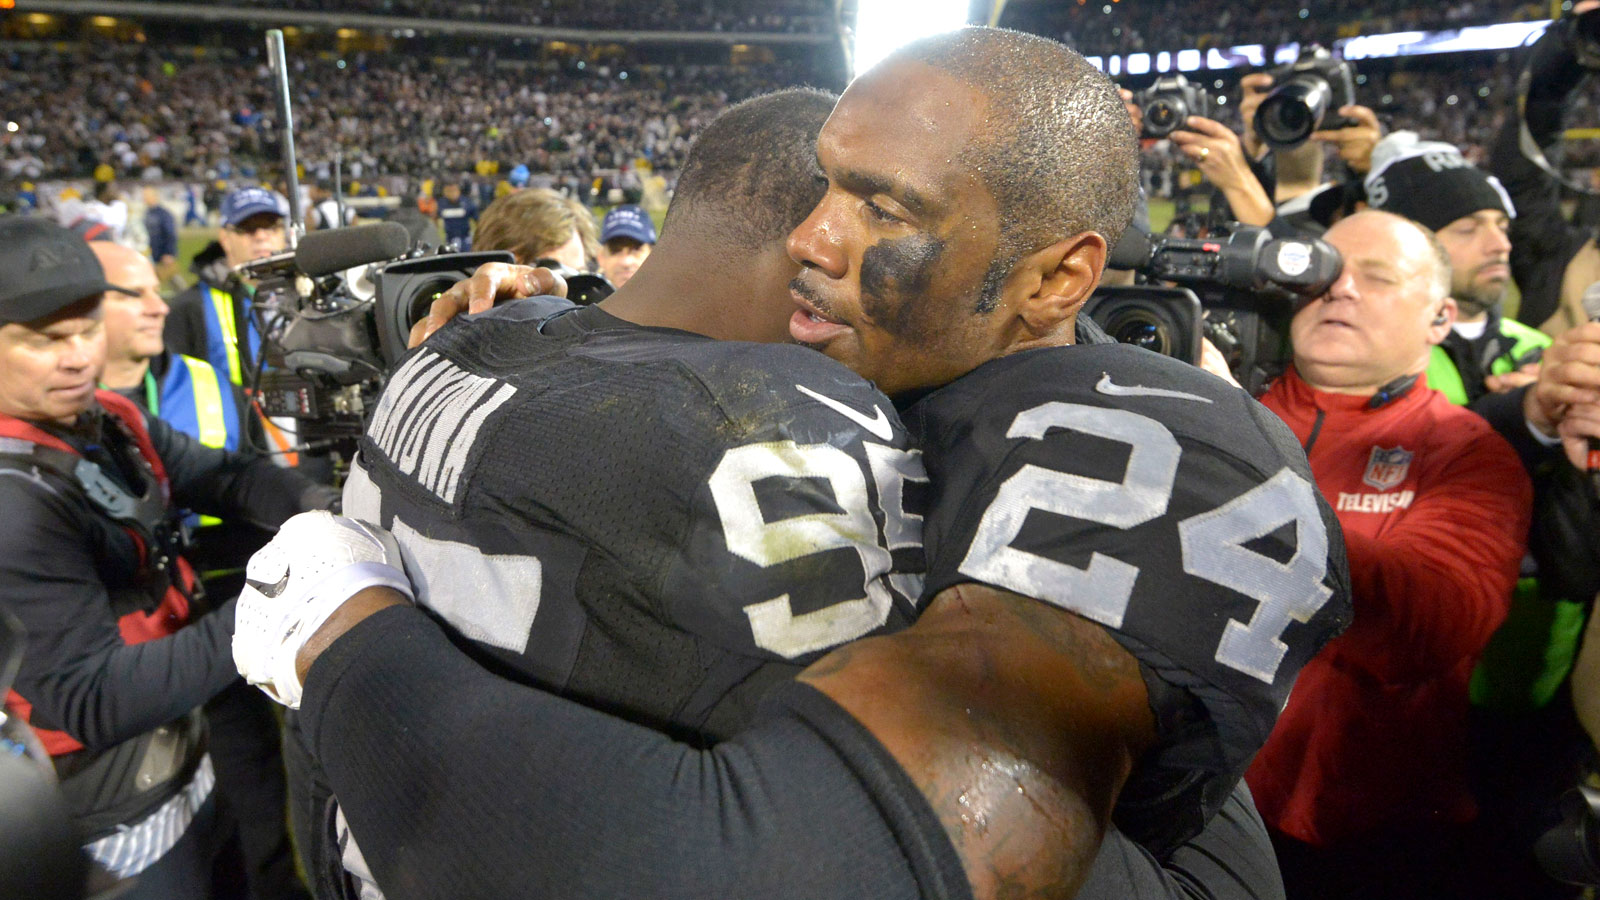 Raiders take down Chargers in OT in possible Oakland finale